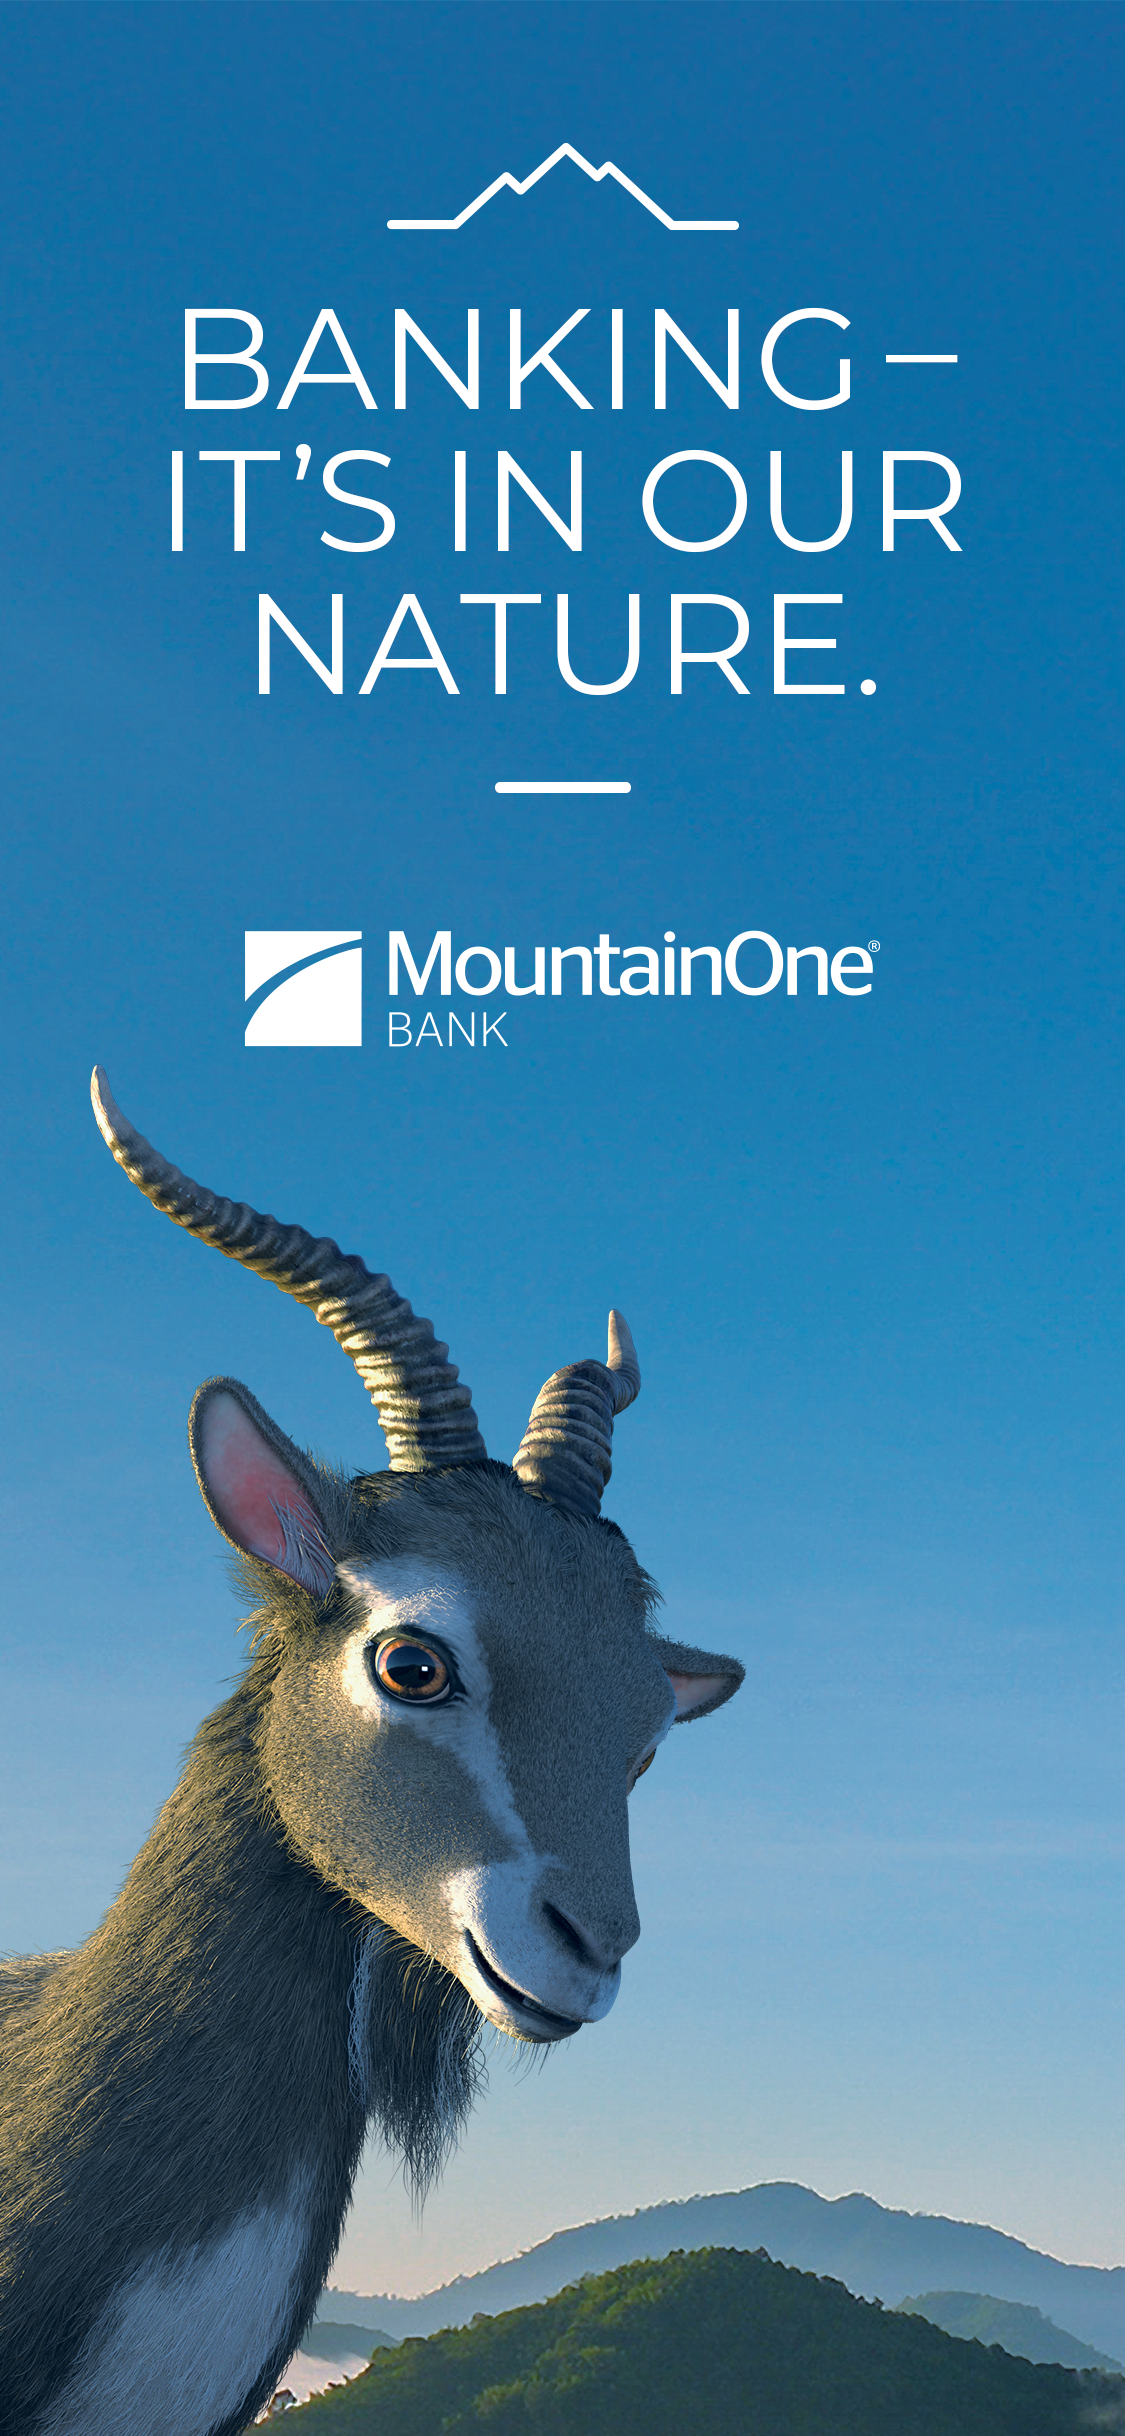 Banking - It's in our nature. MountainOne Bank.